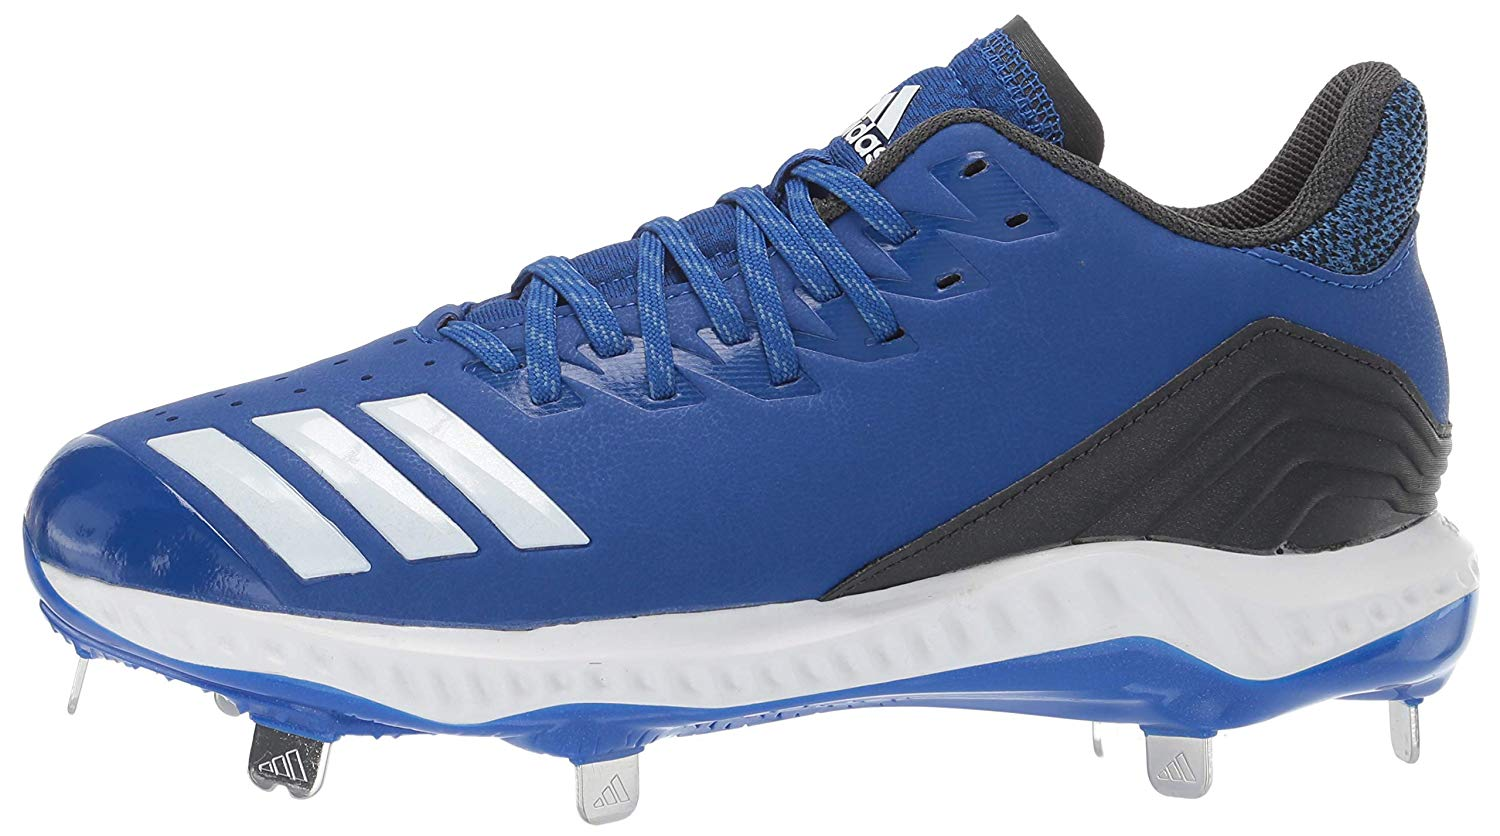 Adidas Womens CG5188 Leather Low Top Lace Up Baseball Shoes US